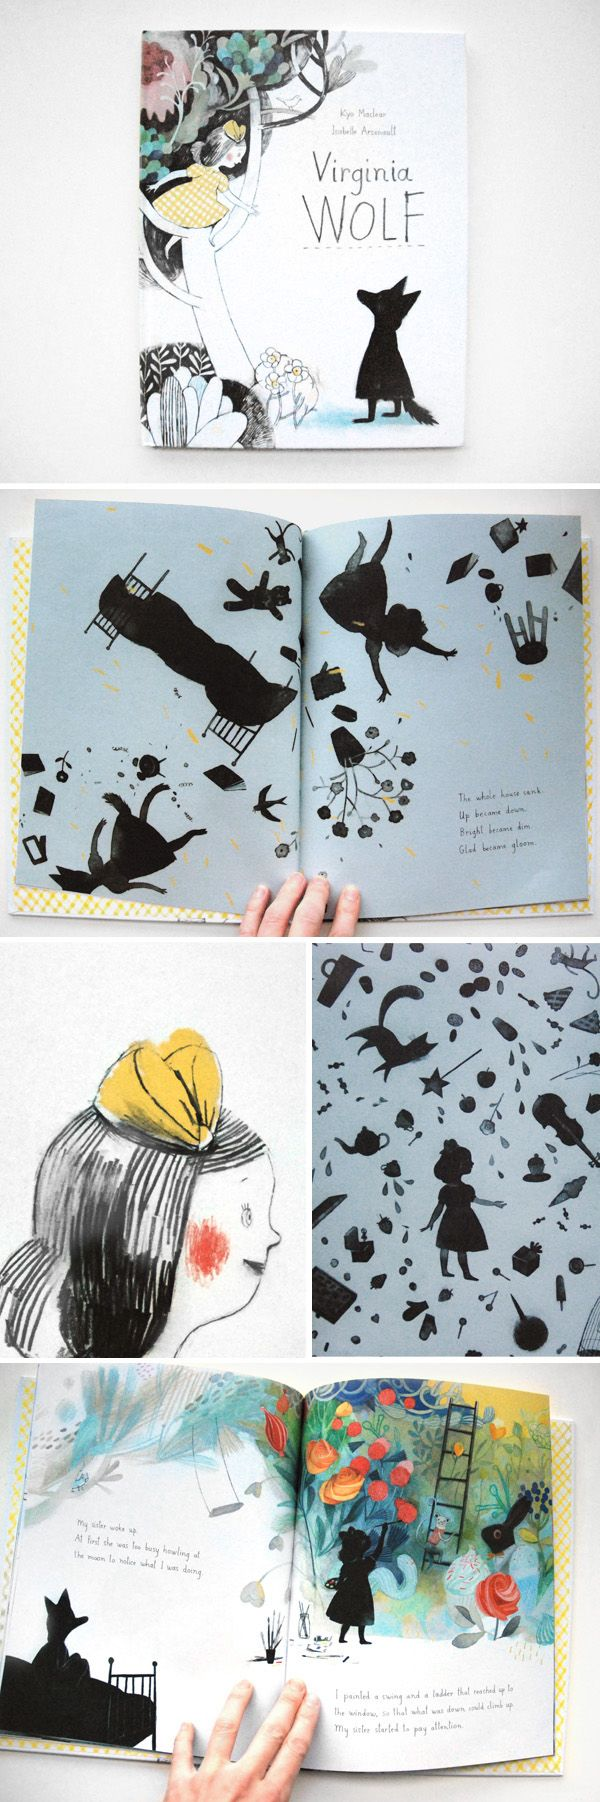 """Virginia Wolf"", de l'auteur Kyo Maclear - Kids Can Press (et en français aux éditions de La Pastèque).   - Some images of the book ""Virginia Wolf"", written by Kyo Maclear and published at Kids Can Press."